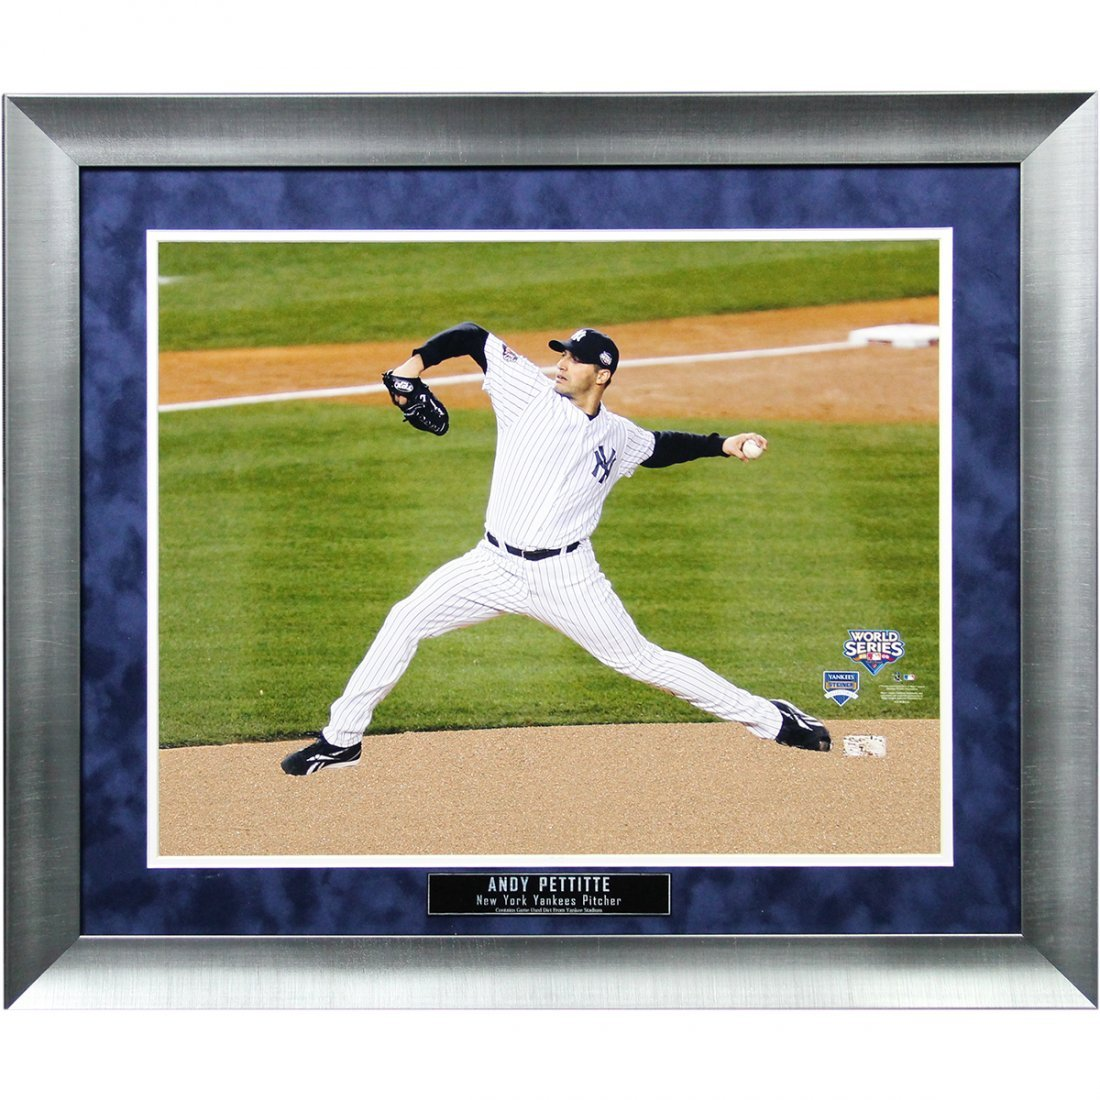 "Andy Pettitte Yankees Home Jersey Pitching ""In The Game"